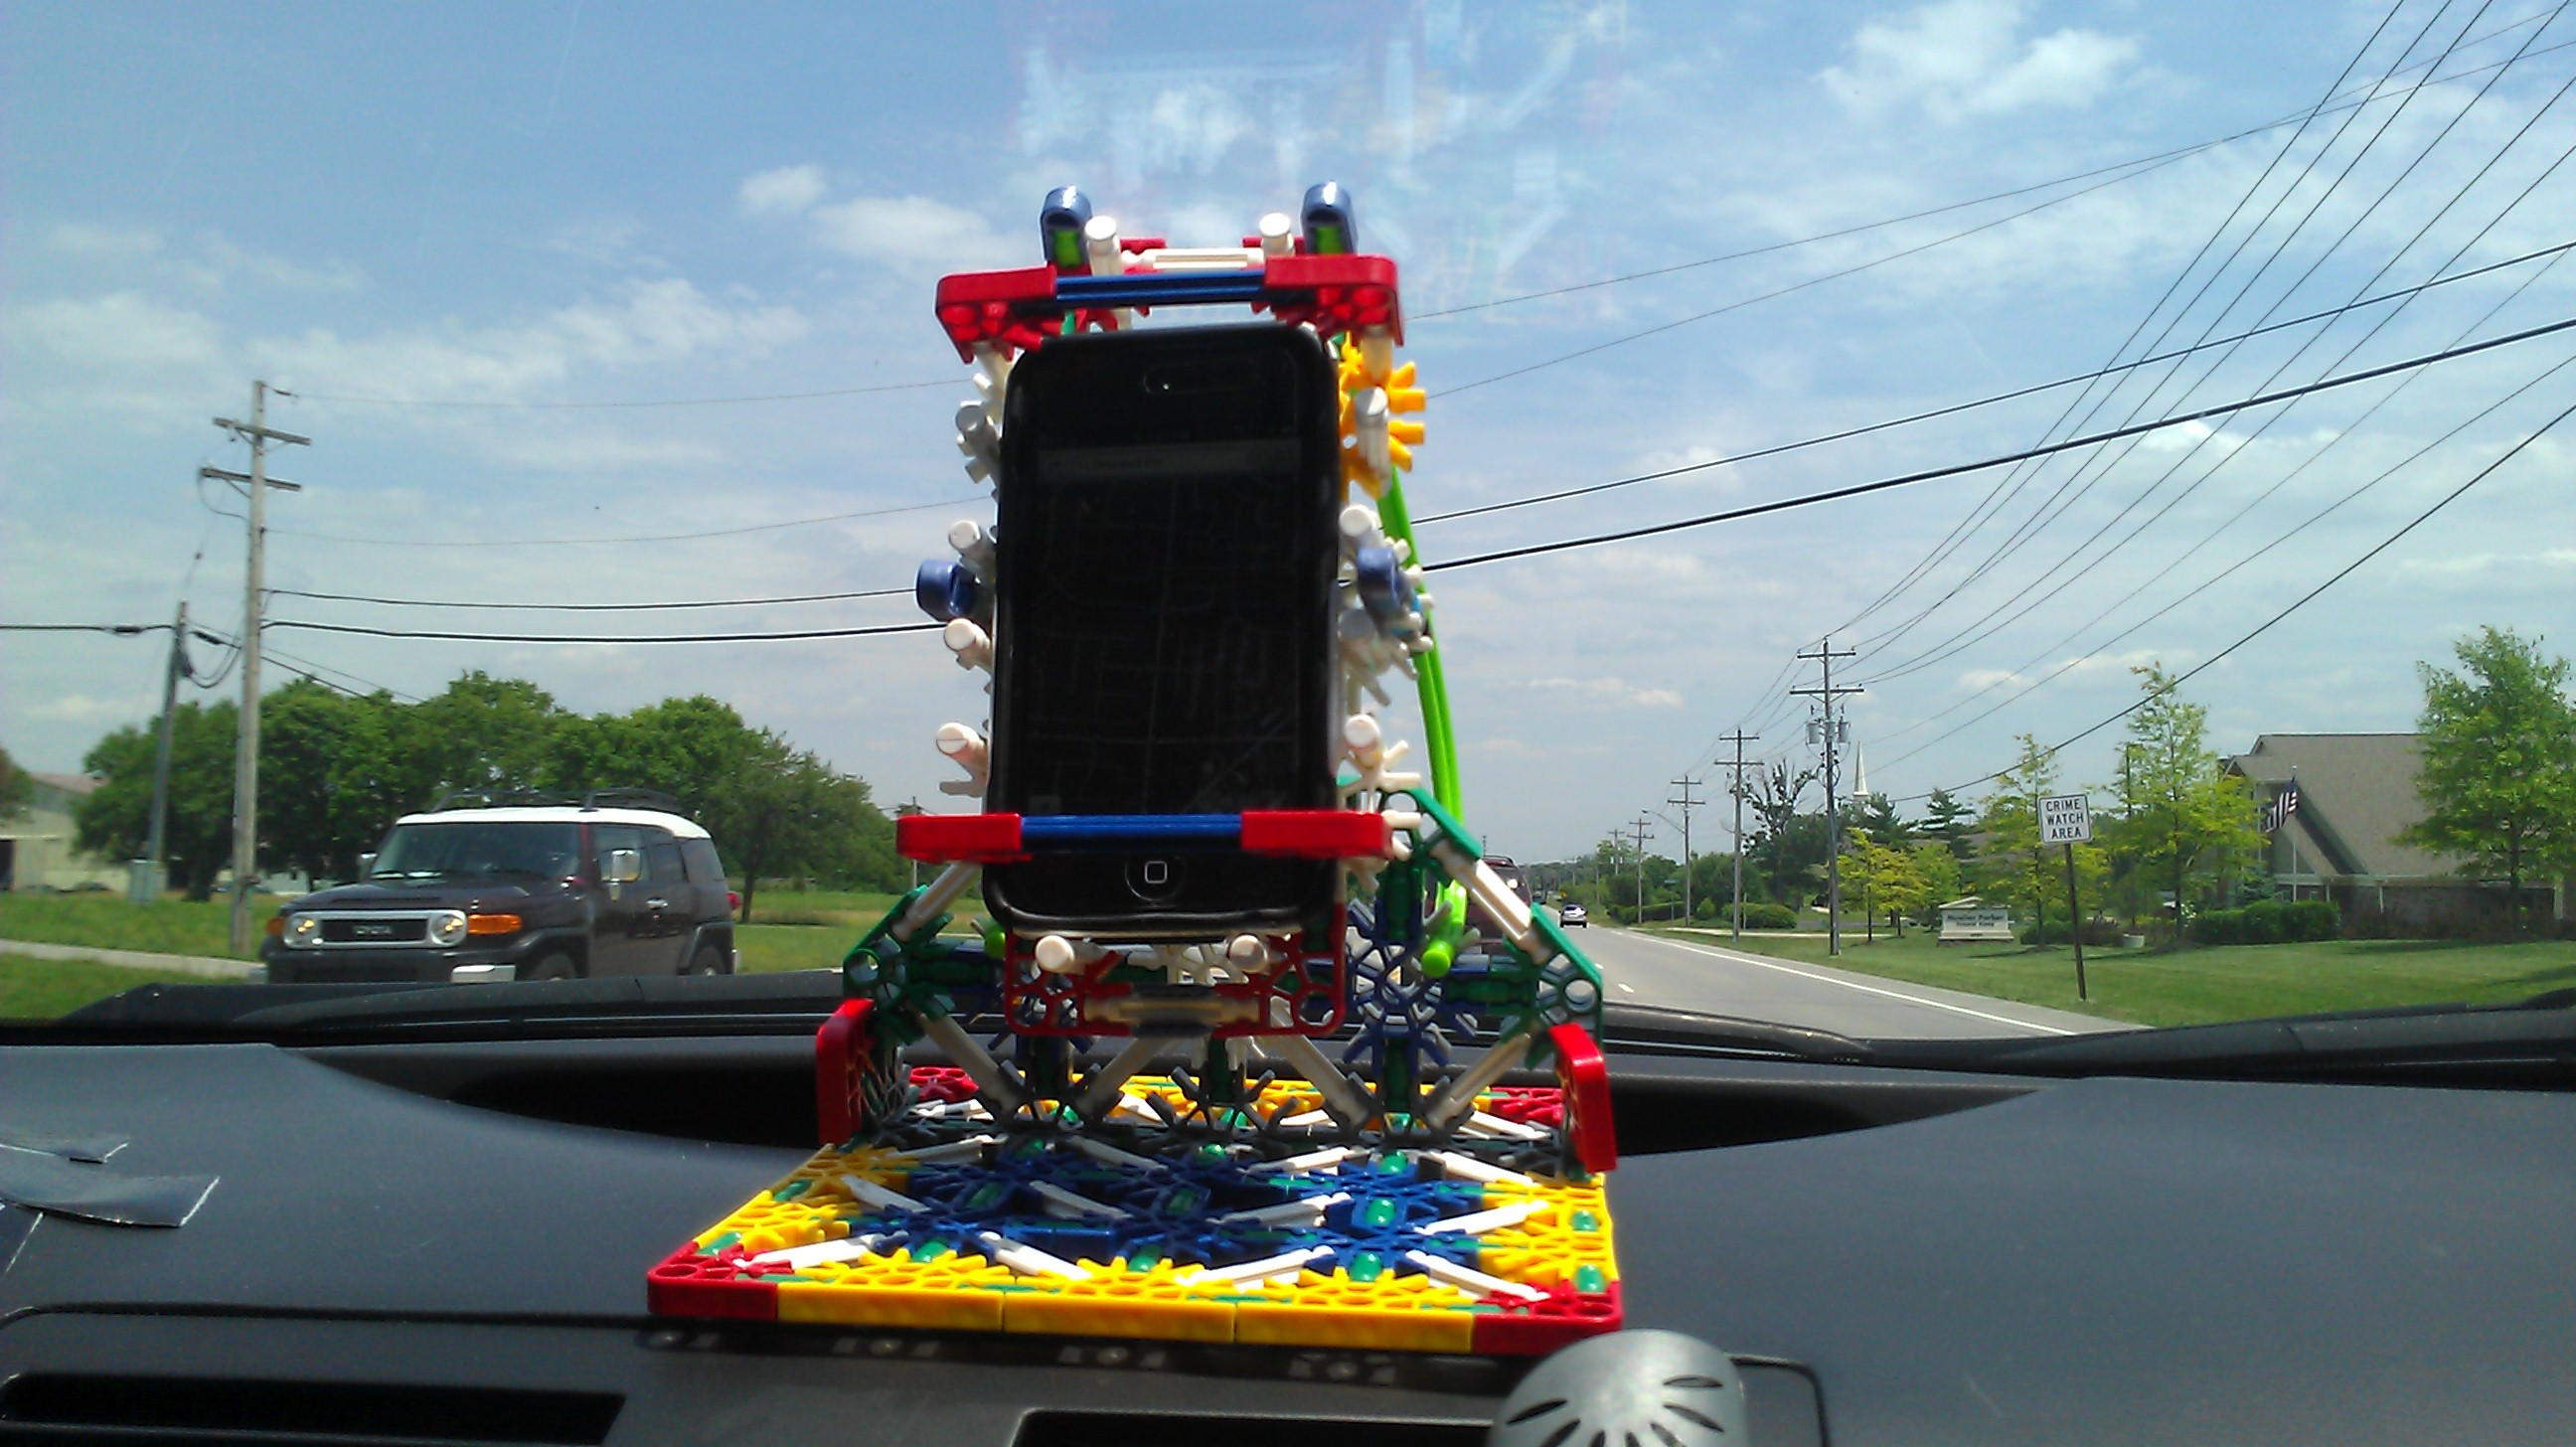 Turn Your Phone Into A GPS Using K'nex!